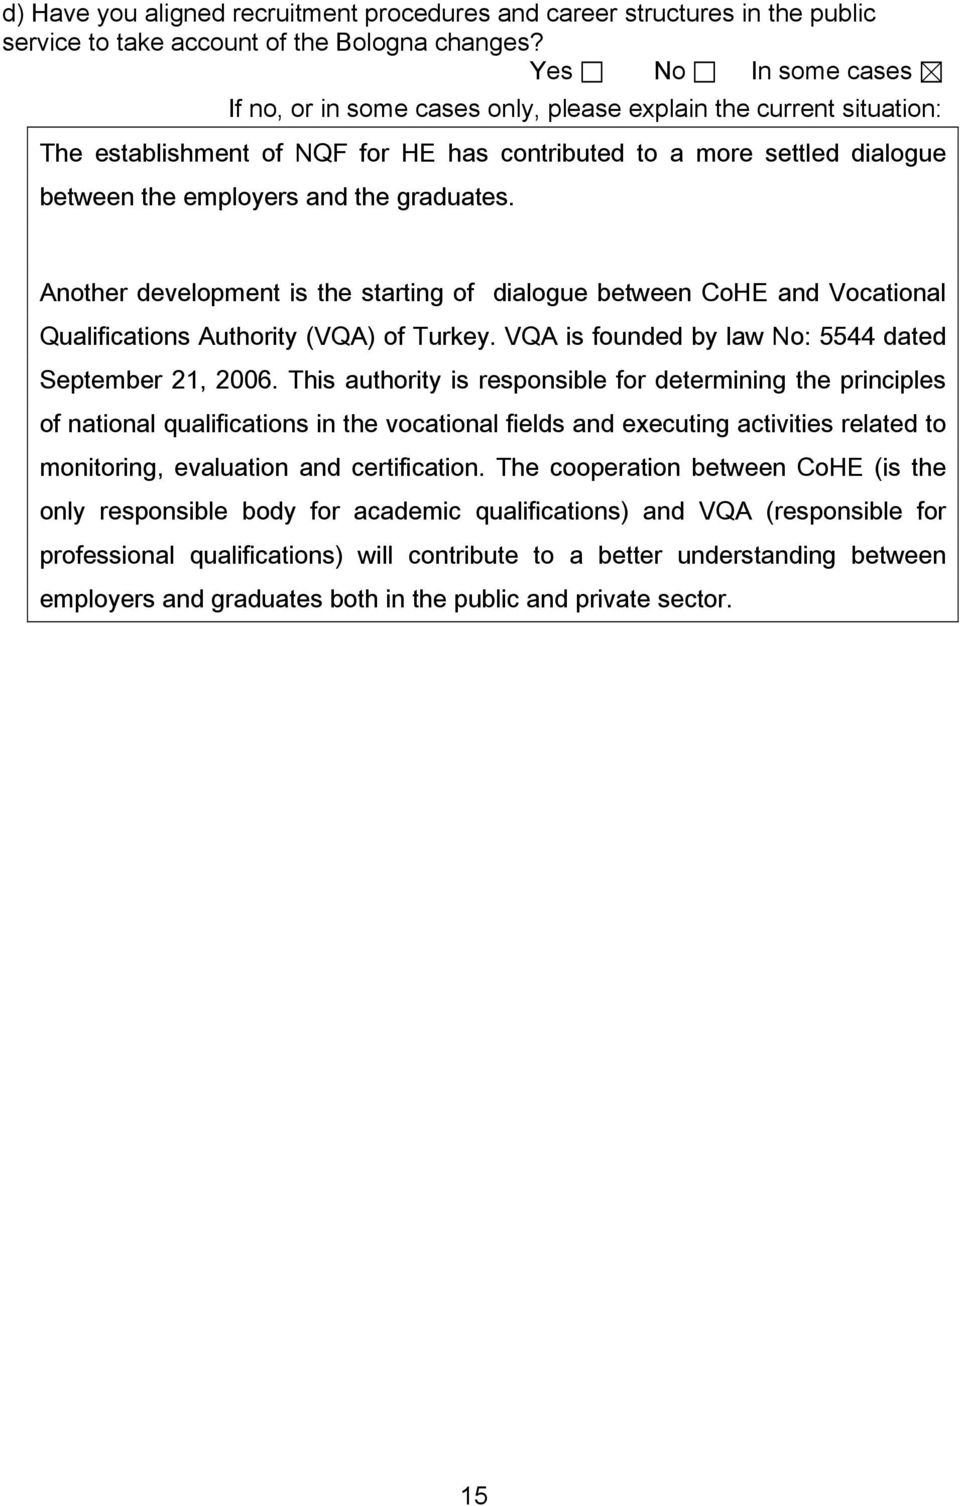 Another development is the starting of dialogue between CoHE and Vocational Qualifications Authority (VQA) of Turkey. VQA is founded by law No: 5544 dated September 21, 2006.